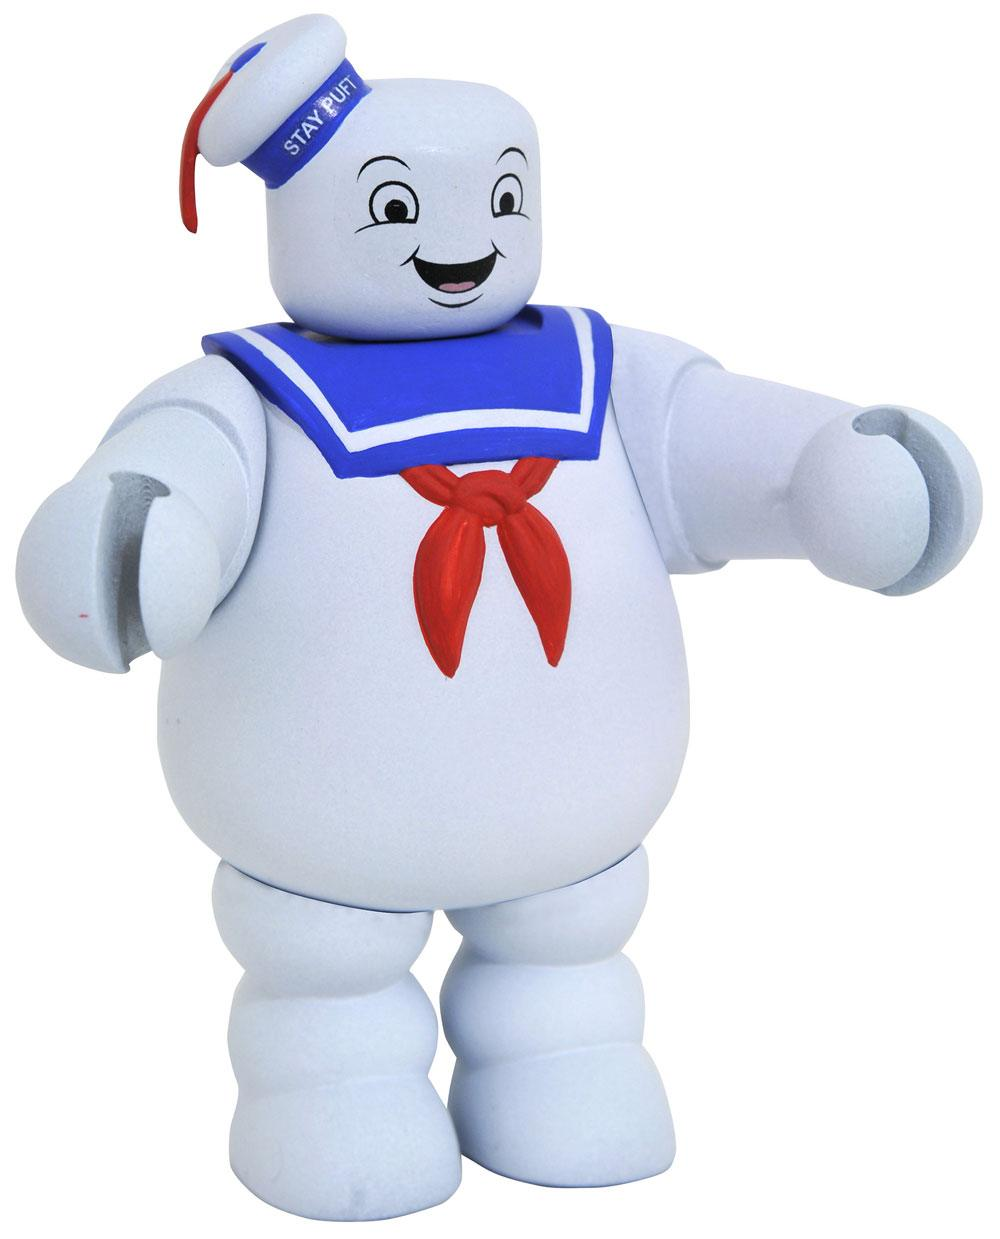 Ghostbusters Vinimates Figure Series 3 Stay-Puft Marshmallow Man 10 cm